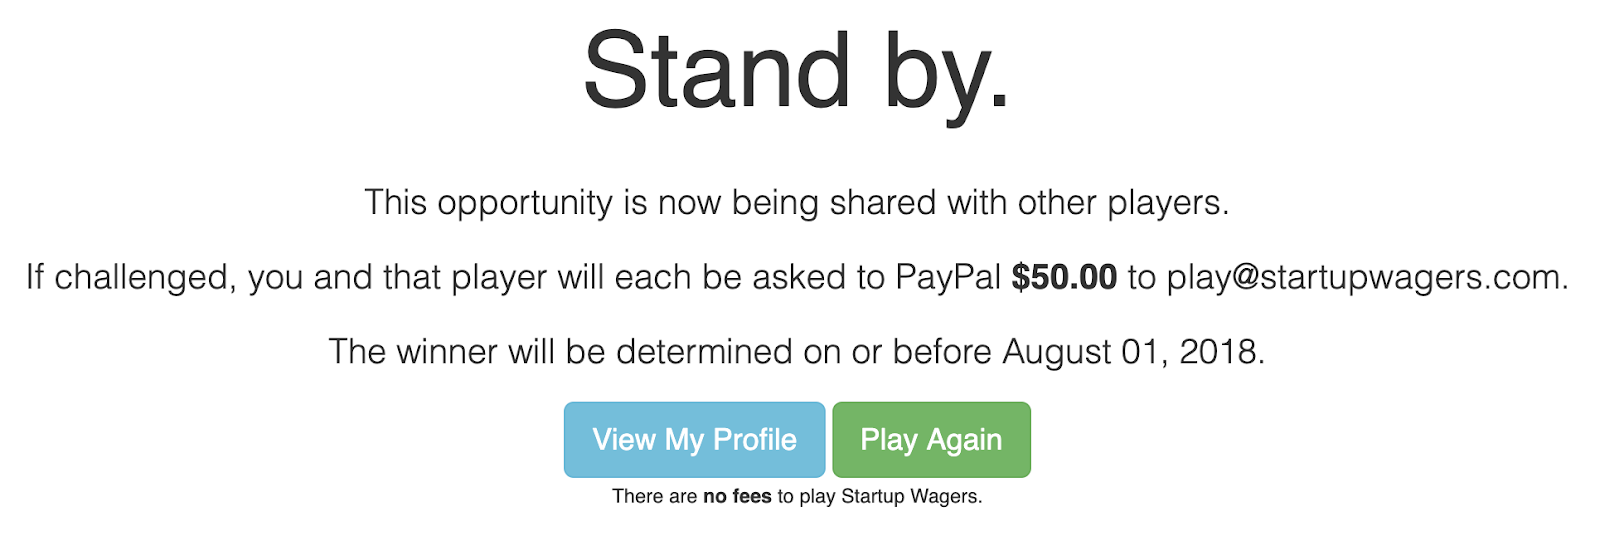 Startup Waggers - Third Step